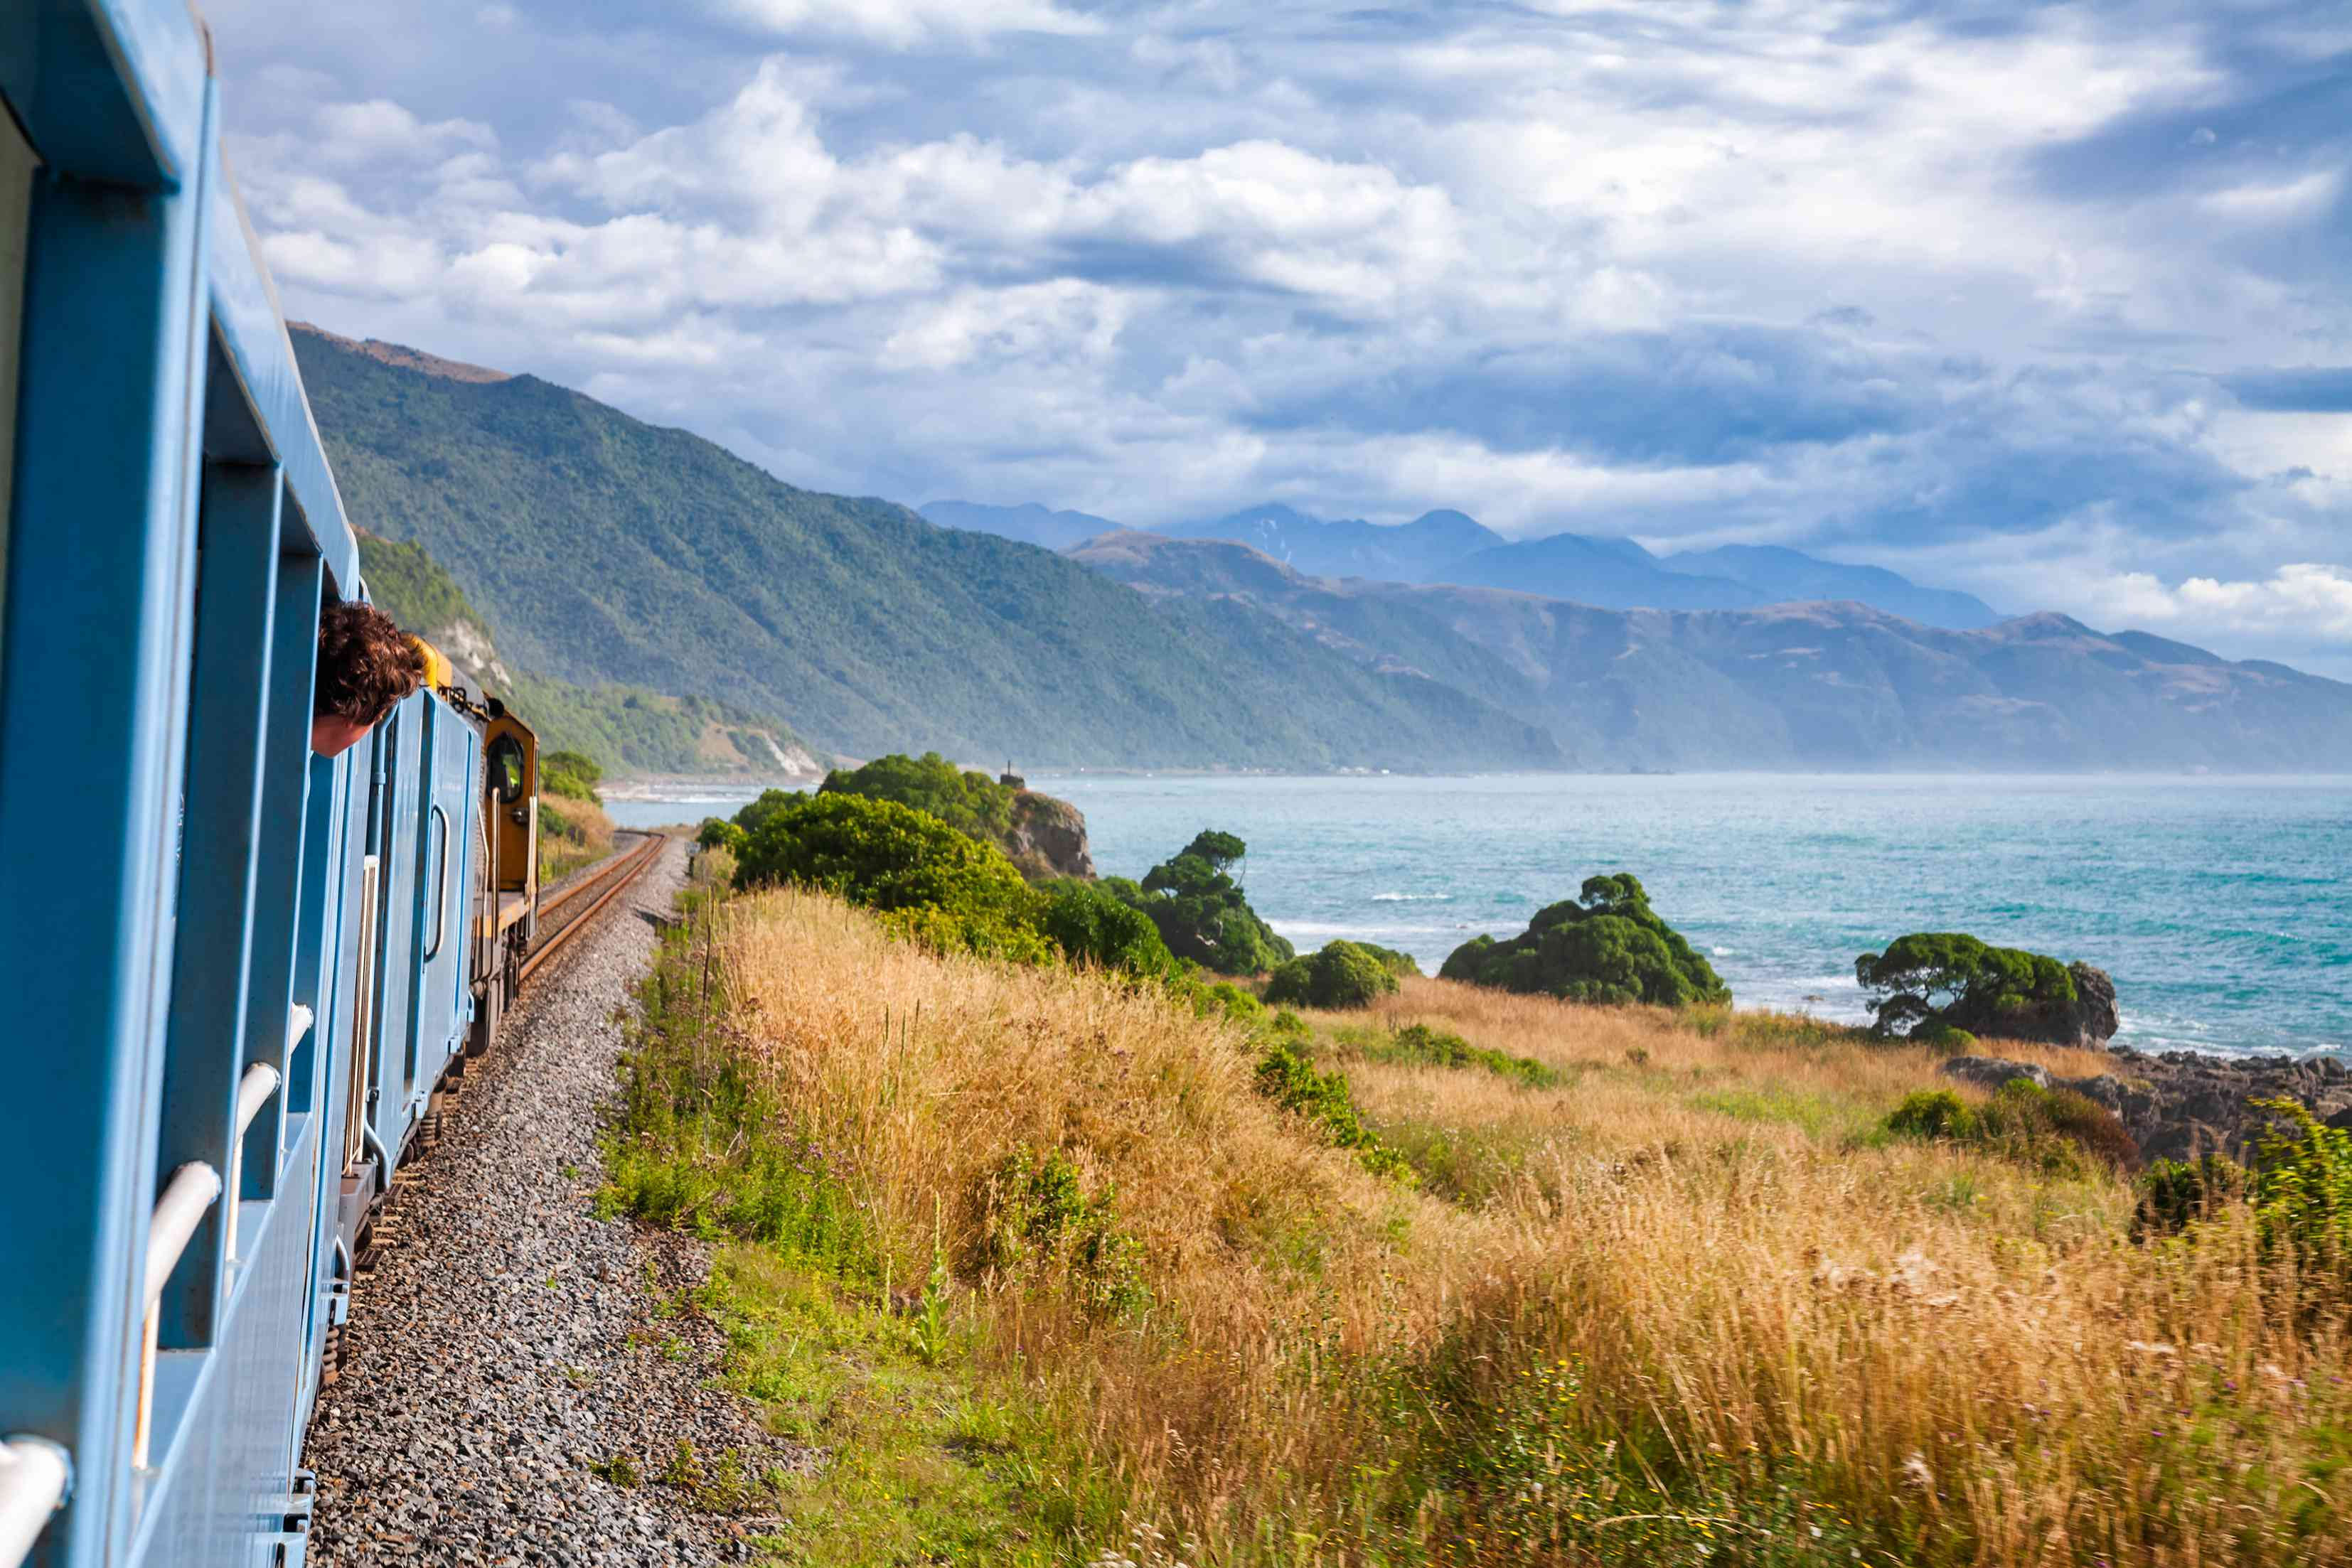 blue train traveling along coast with blue sea and cliffs